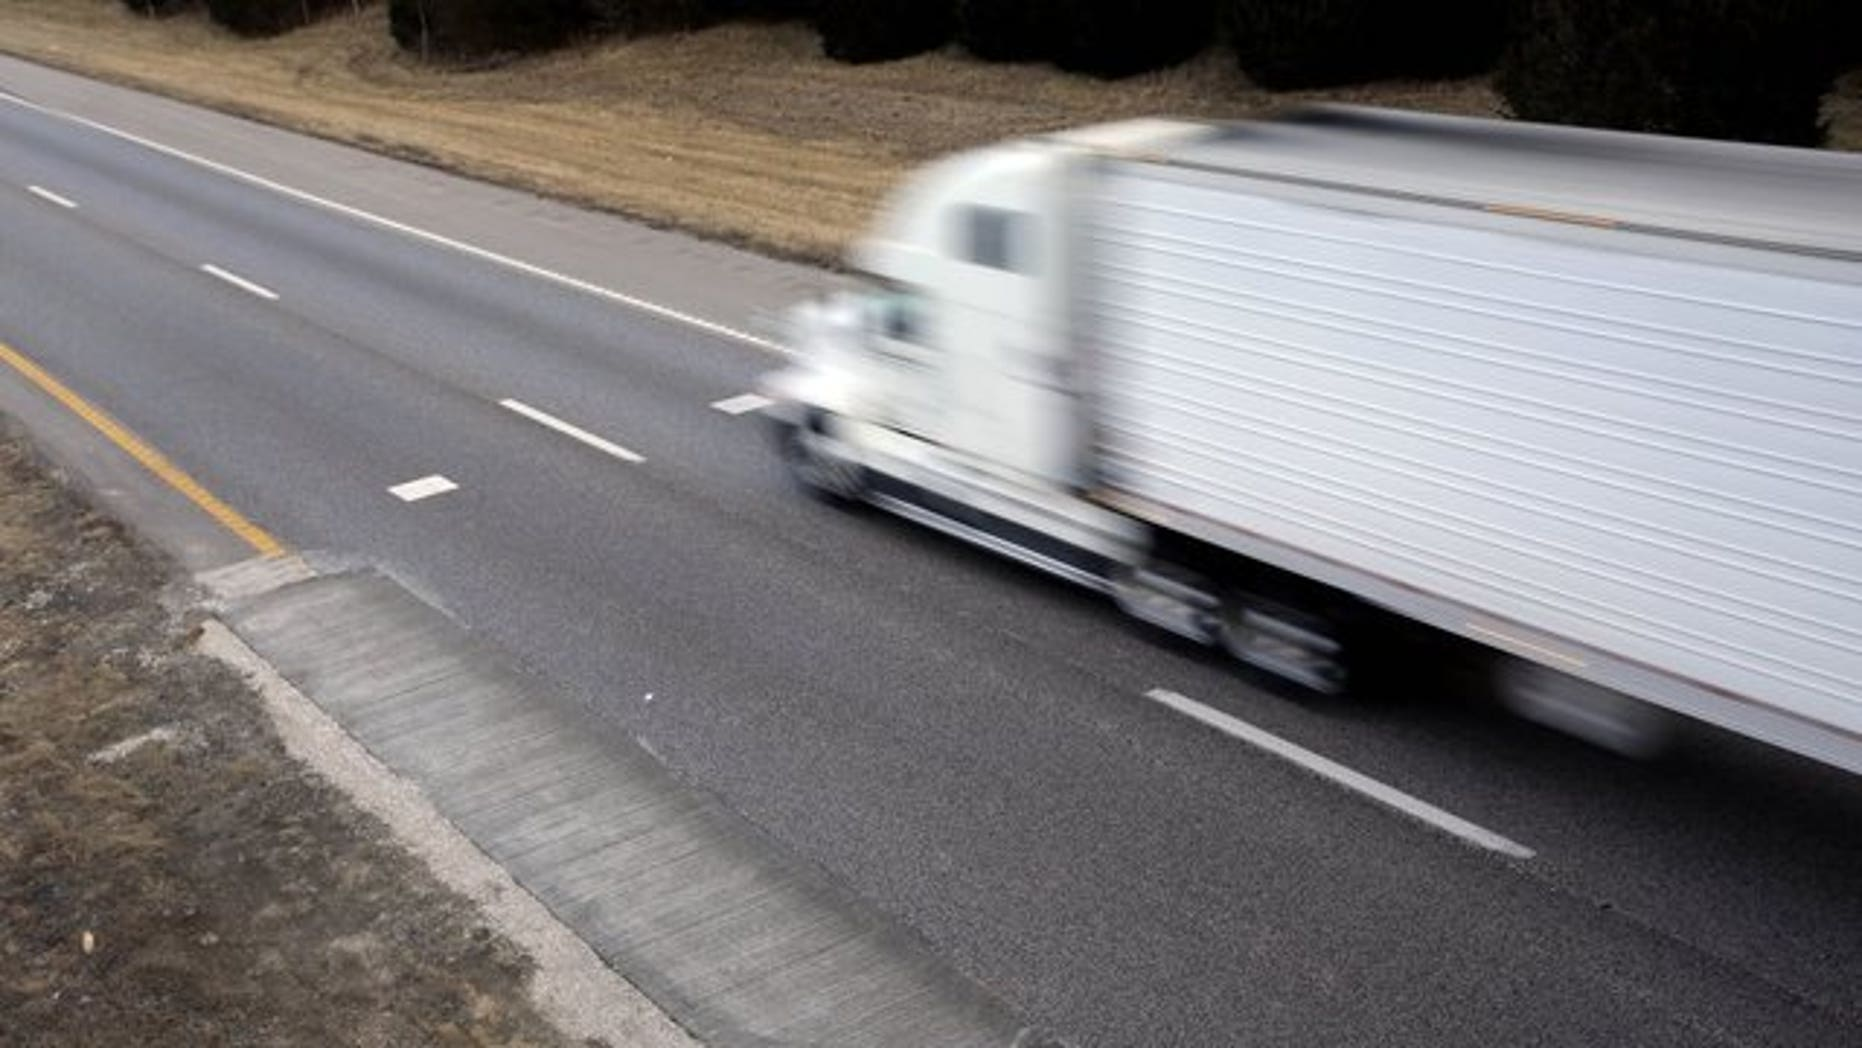 A jury awarded $240,000 to Muslim drivers who say a trucking company fired them. (AP Photo/Jeff Roberson)